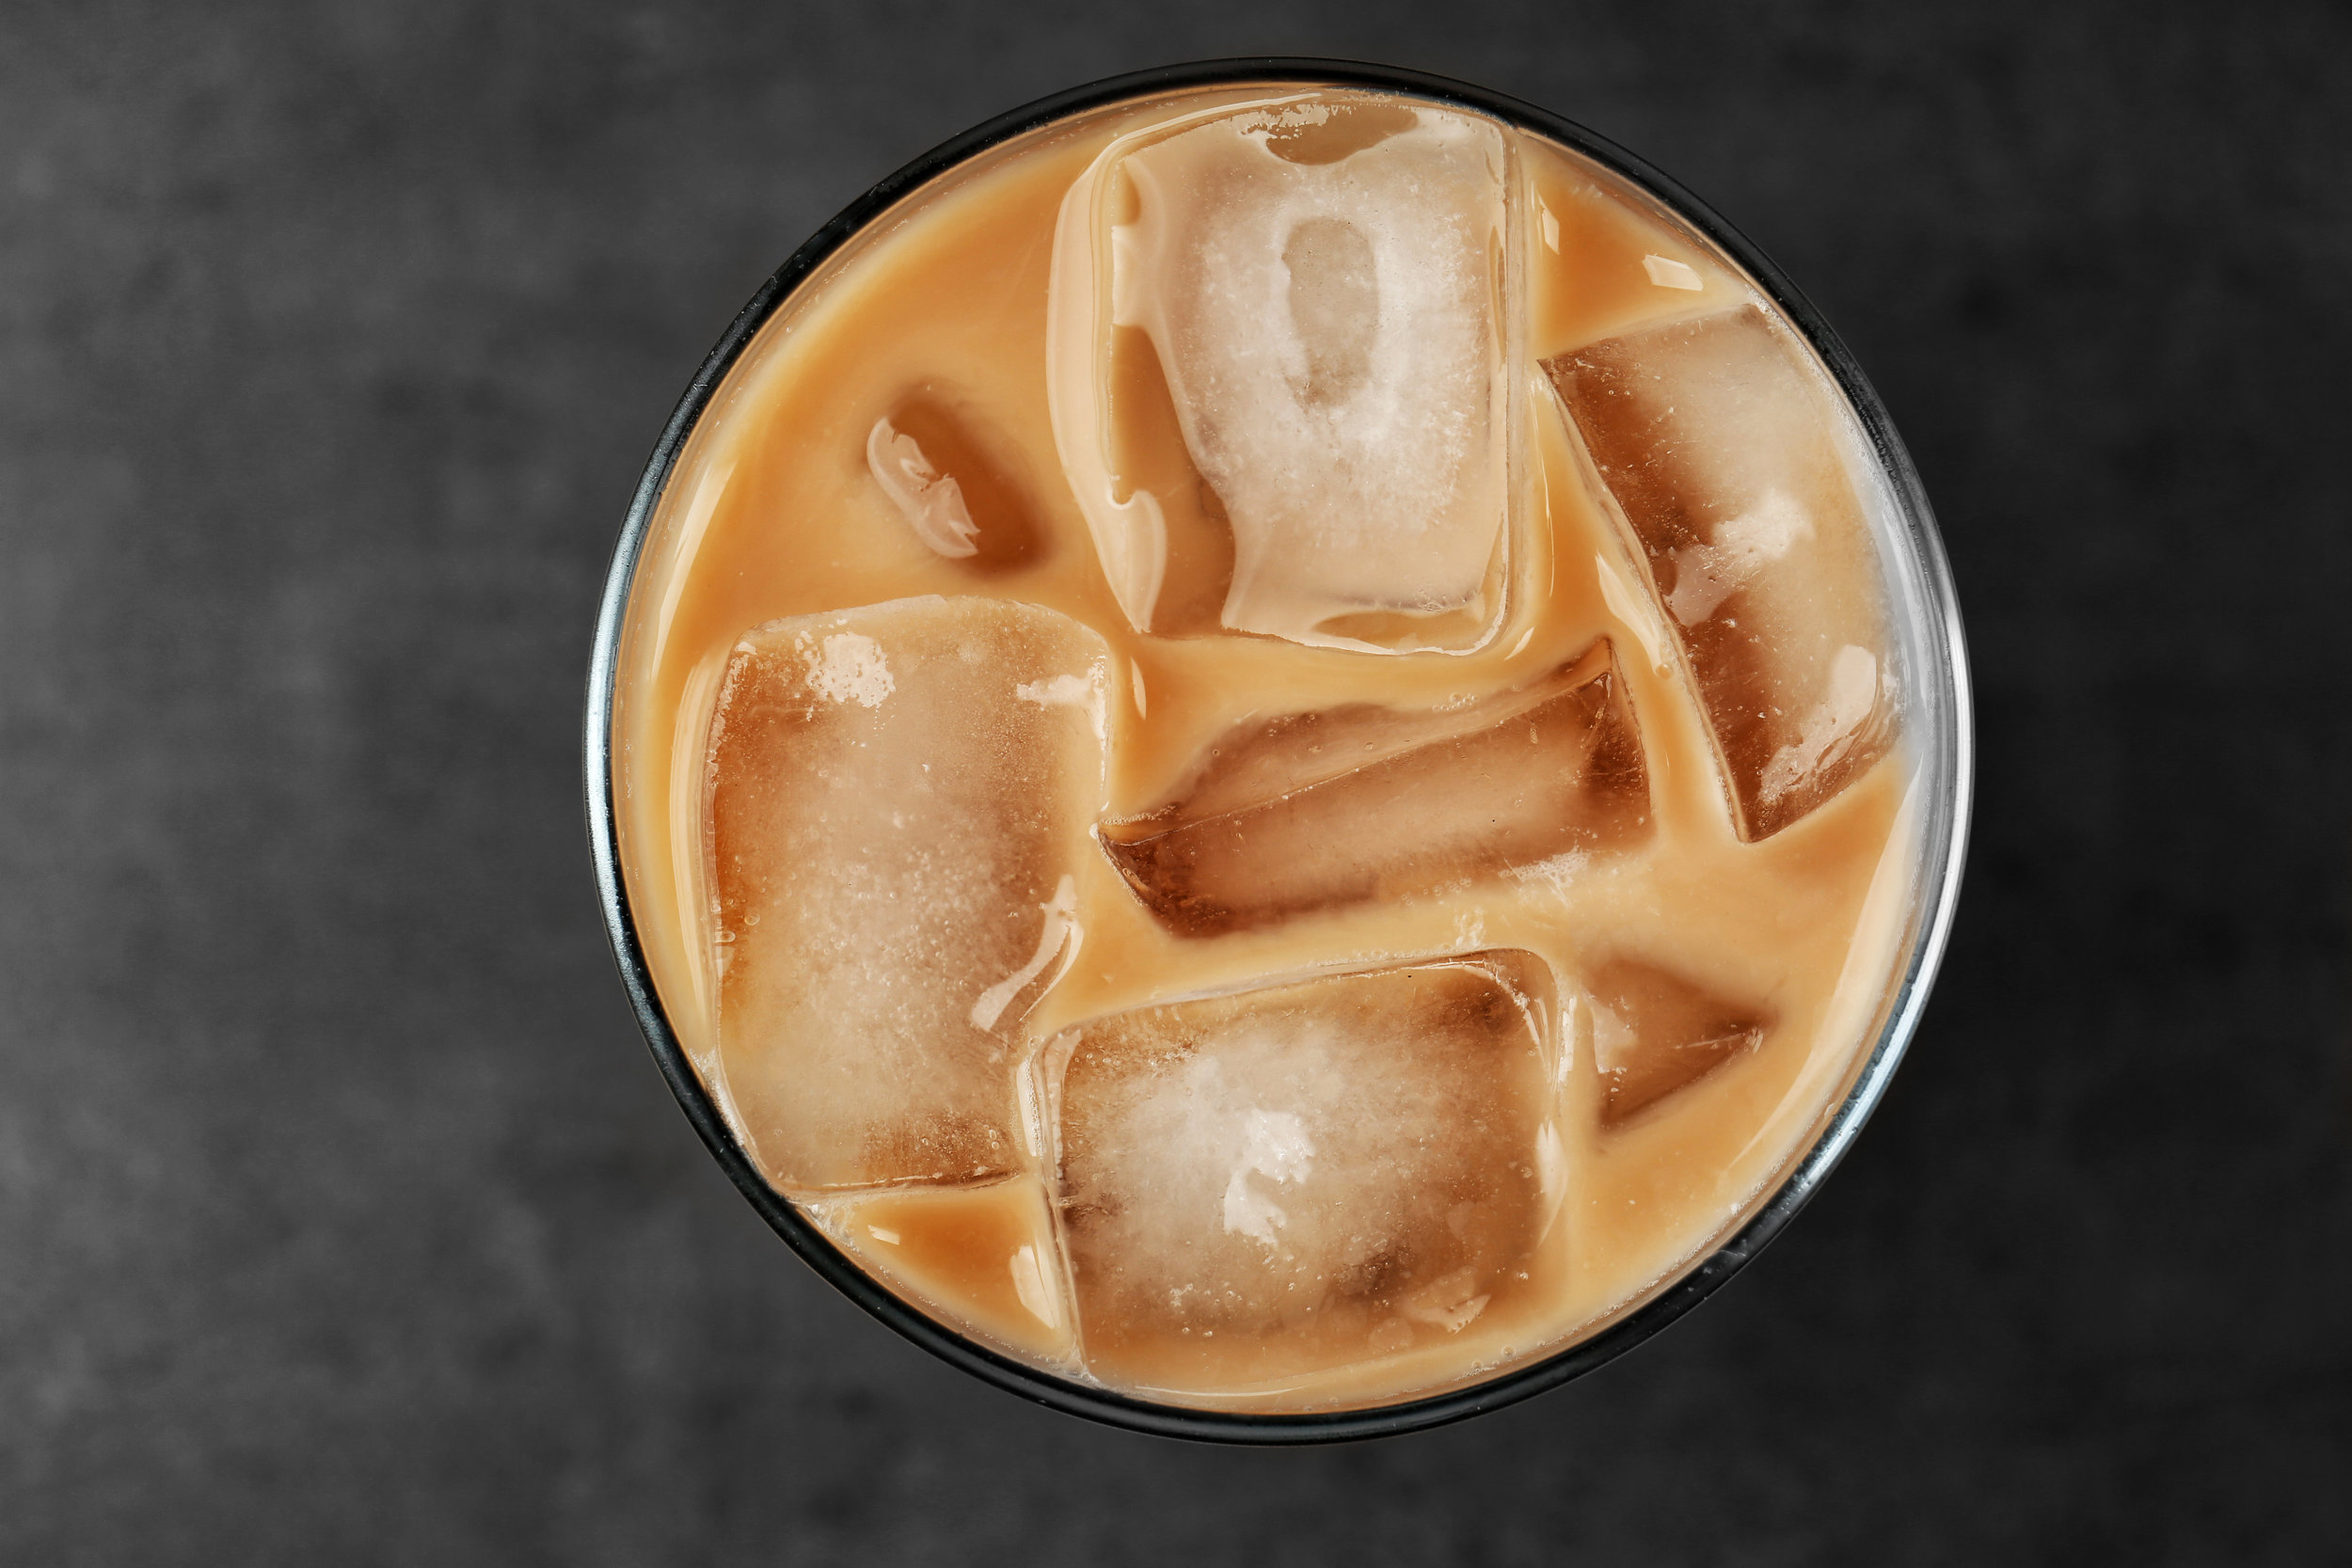 iced drinks - Cold brew toddy 16oz24 hour cold brewed coffee- - - - - - - - - -Iced americano 16oz | 24ozEspresso | water- - - - - - - - - -El chapo 24ozCold brew | Mexican coca cola- - - - - - - - - -Iced bombon 12ozEspresso | sweet condensed milk- - - - - - - - - -Iced latte 16oz | 24ozEspresso | milk- - - - - - - - - -Iced Mocha 16oz | 24ozEspresso | milk | chocolate- - - - - - - - - -Iced latte miel 16oz | 24ozEspresso | Milkcinnamon | Honey- - - - - - - - - -Iced malted mocha 16oz | 24ozEspresso | milkchocolate | malt- - - - - - - - - -Iced mexi mocha 16oz | 24ozEspresso | milk | chocolateghost pepper | cinnamon- - - - - - - - - -Iced thai tea 16oz | 24ozSpiced black tea | Milk- - - - - - - - - -Iced chai latte 16oz | 24ozSpicy chai tea | milk- - - - - - - - - -Iced turmeric latte 16ozSpiced turmeric | milk | honey- - - - - - - - - -Iced matcha 16oz | 24ozMatcha green teamilk | vanilla- - - - - - - - - -Lemonade 16oz | 24ozMade in house- - - - - - - - - -Arnold palmer 24ozLemonade | black tea- - - - - - - - - -Italian soda 24ozFlavored syrupsparkling water